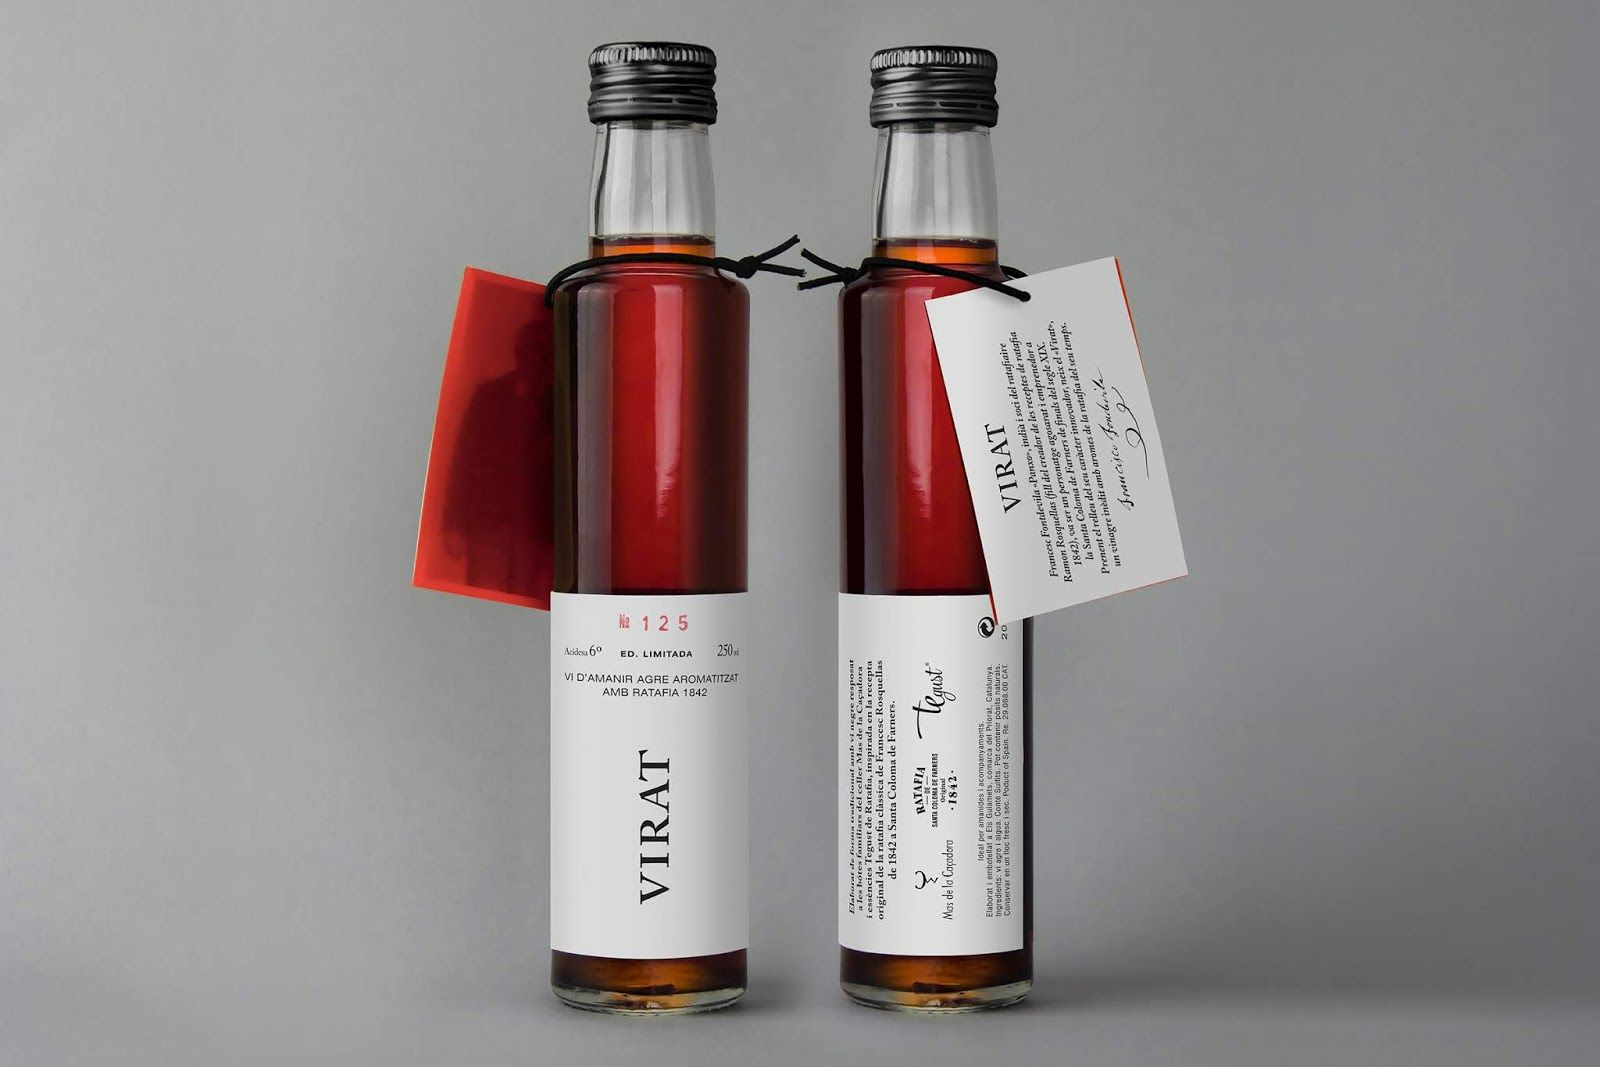 Virat With Images Creative Packaging Design Packaging Design Inspiration Packaging Design